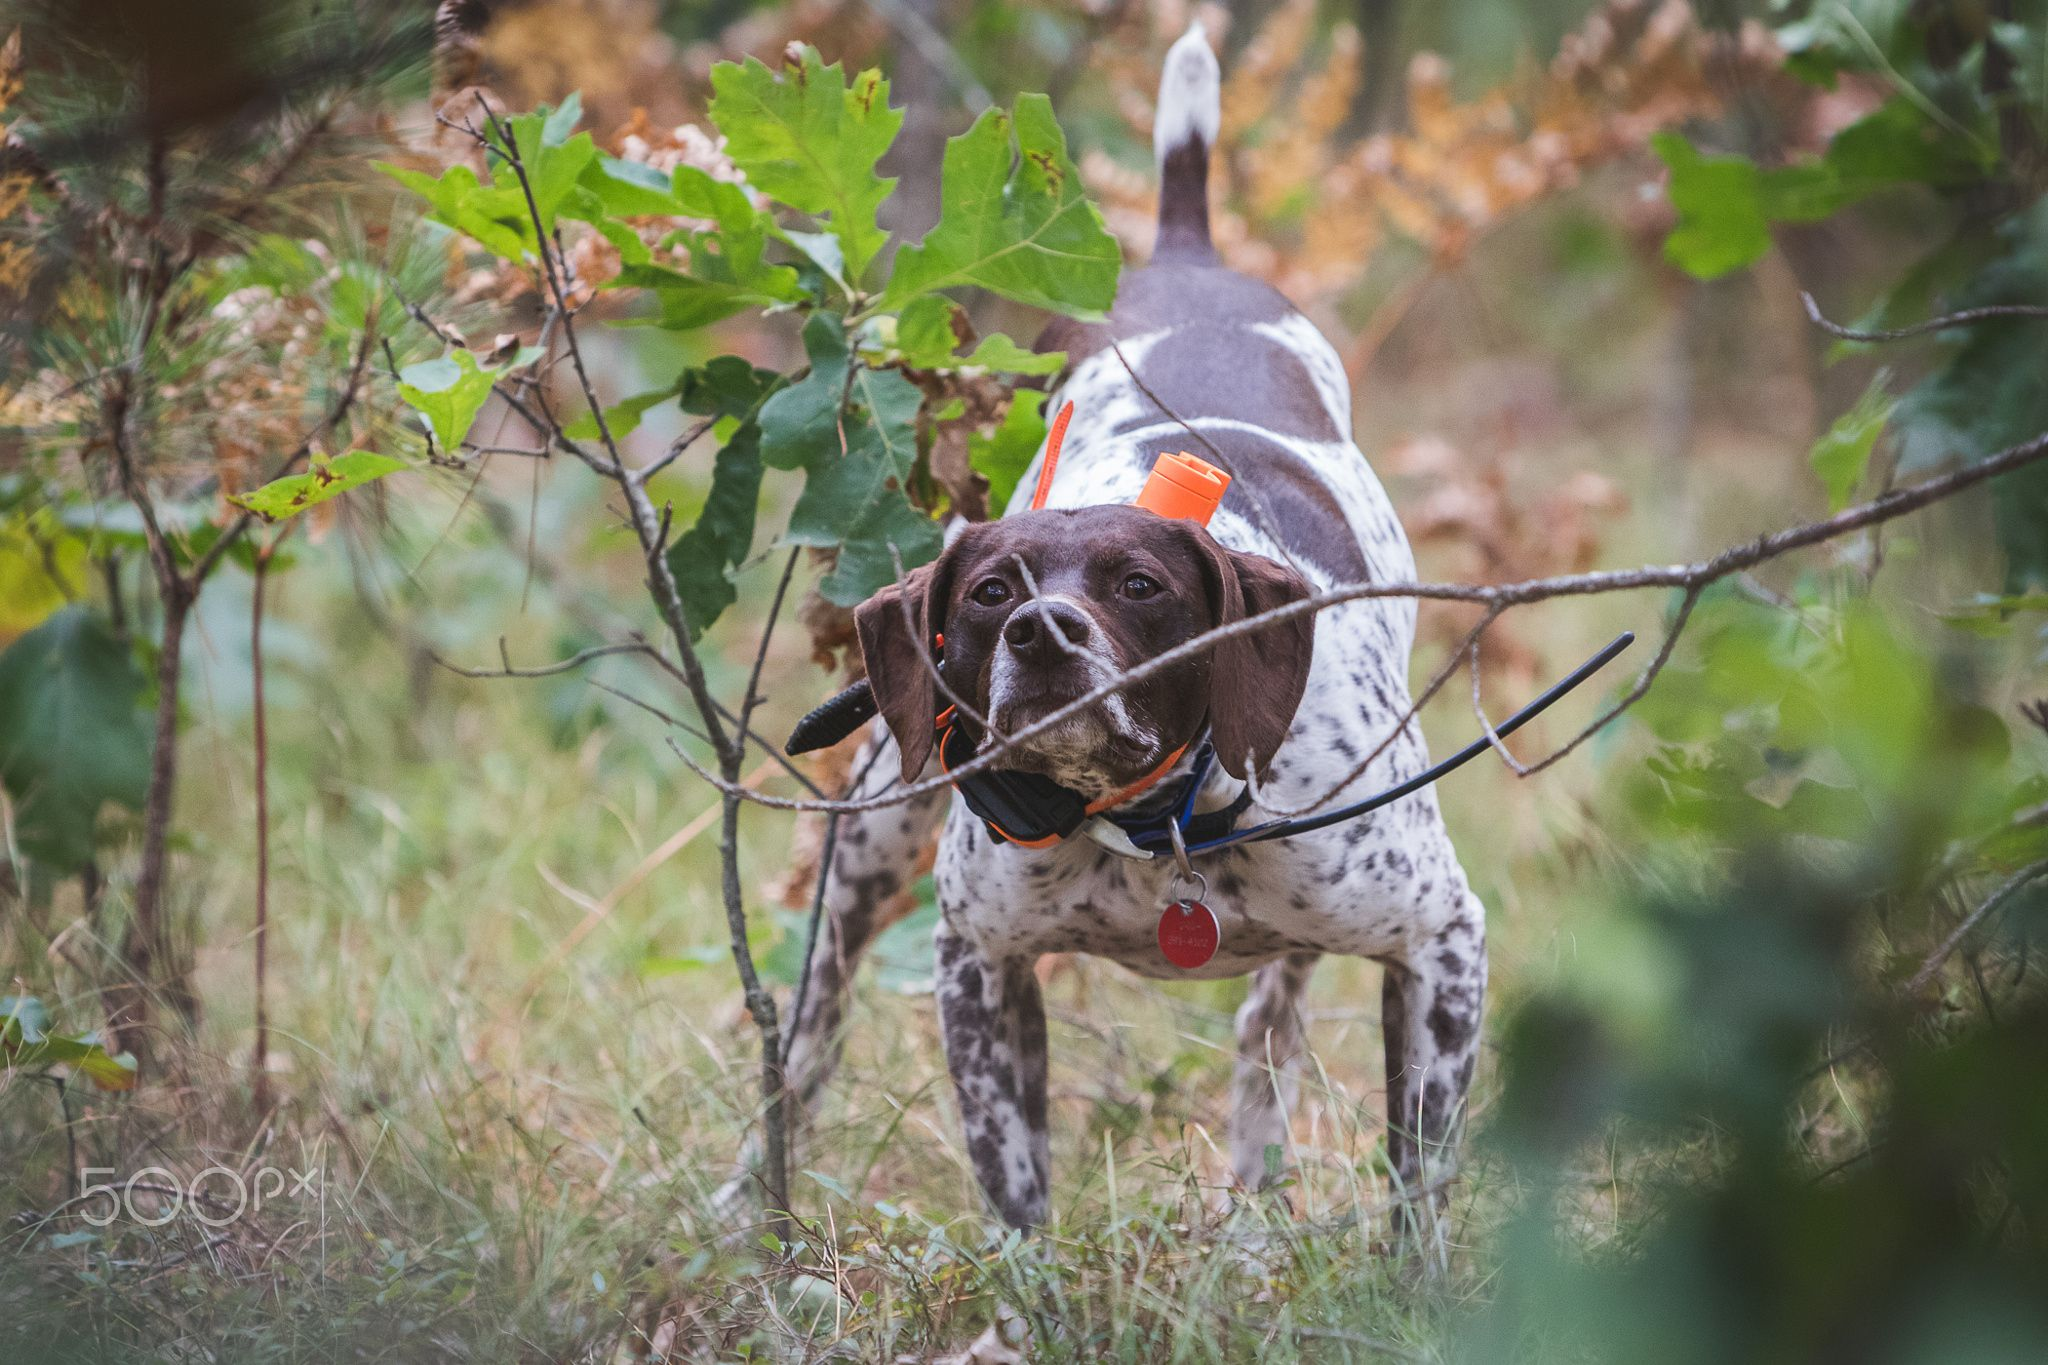 The Nose Photo of dog upland hunting for grouse and